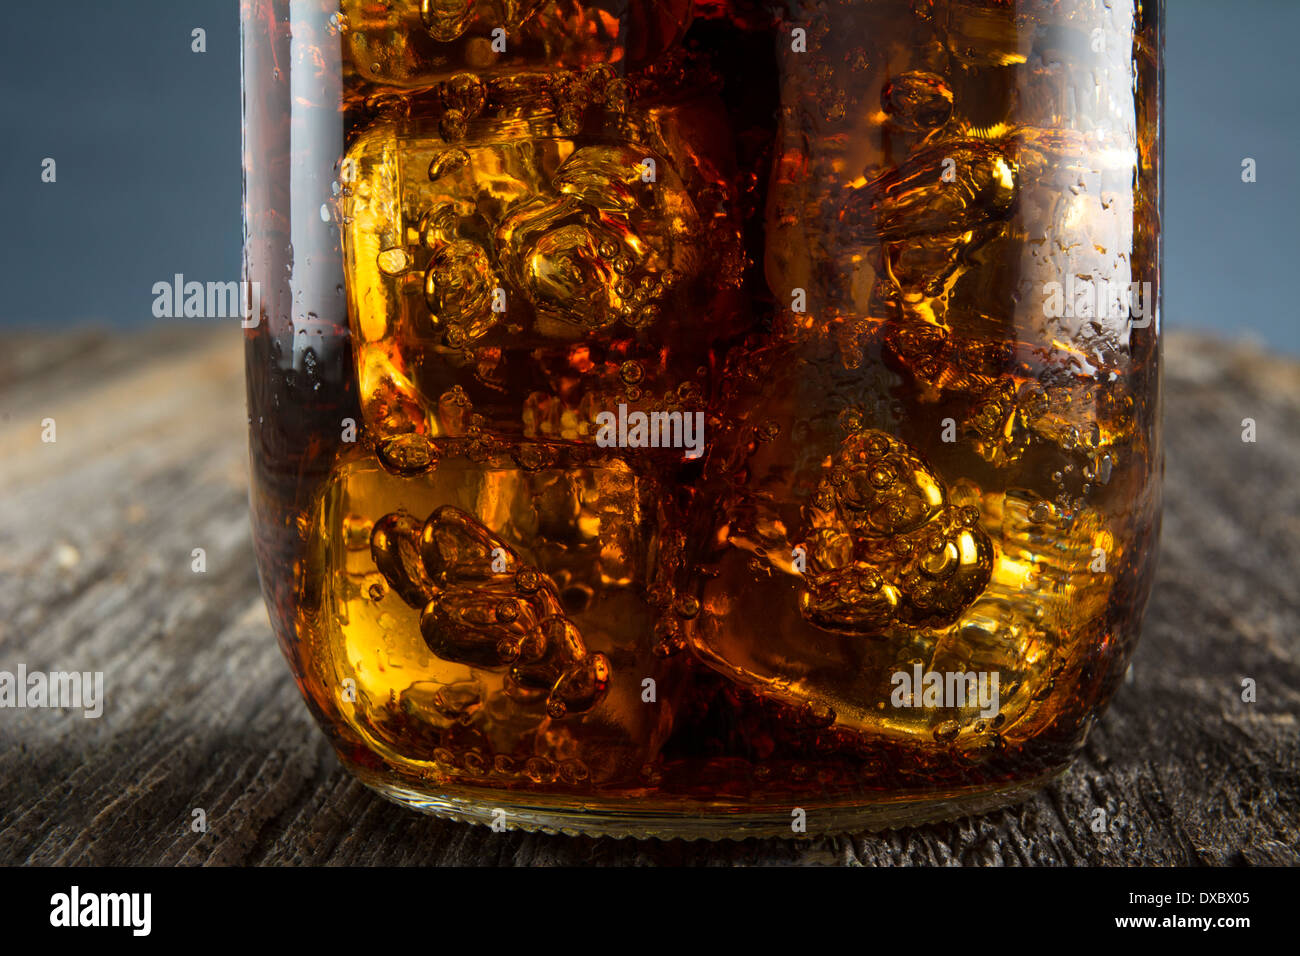 Closeup of Cuba Libre or rum and cola drink with ice in mason jar - Stock Image